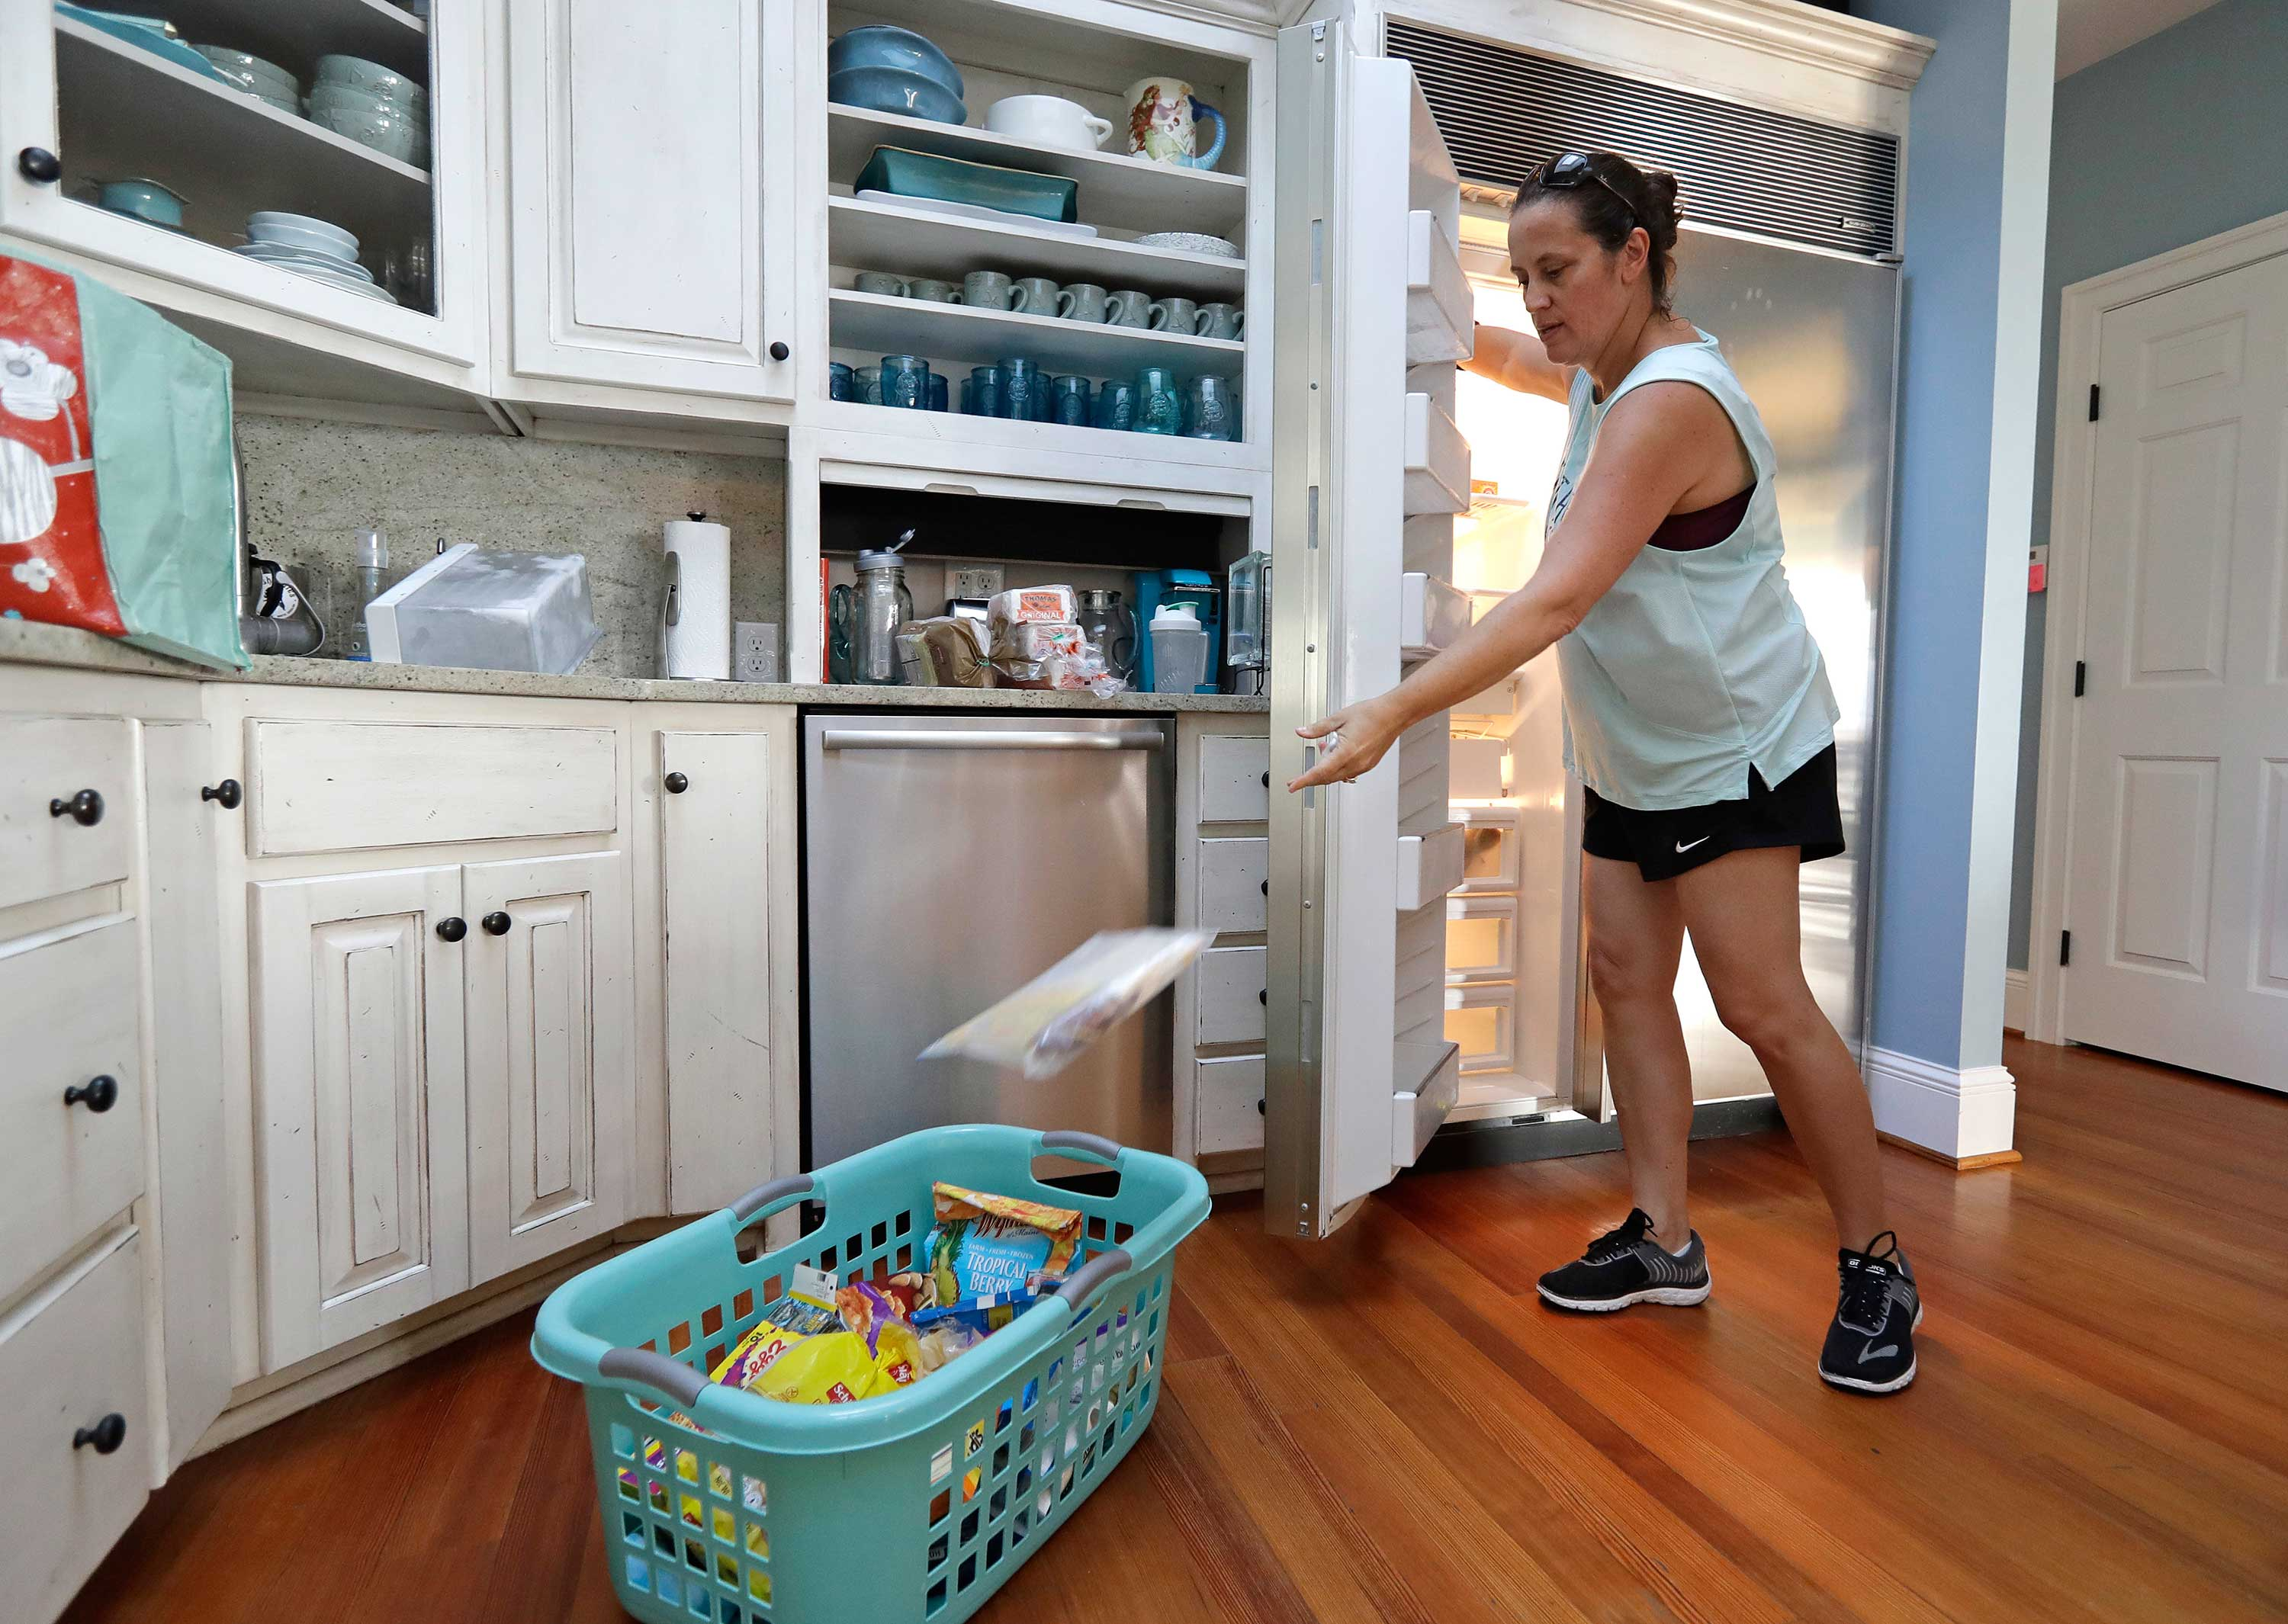 <div class='meta'><div class='origin-logo' data-origin='none'></div><span class='caption-text' data-credit='Chuck Burton/AP Photo'>Michelle Stober, of Cary, N.C., removes food from a freezer as she prepares their vacation home in advance of Hurricane Florence in Wrightsville Beach, N.C., Tuesday, Sept. 11.</span></div>